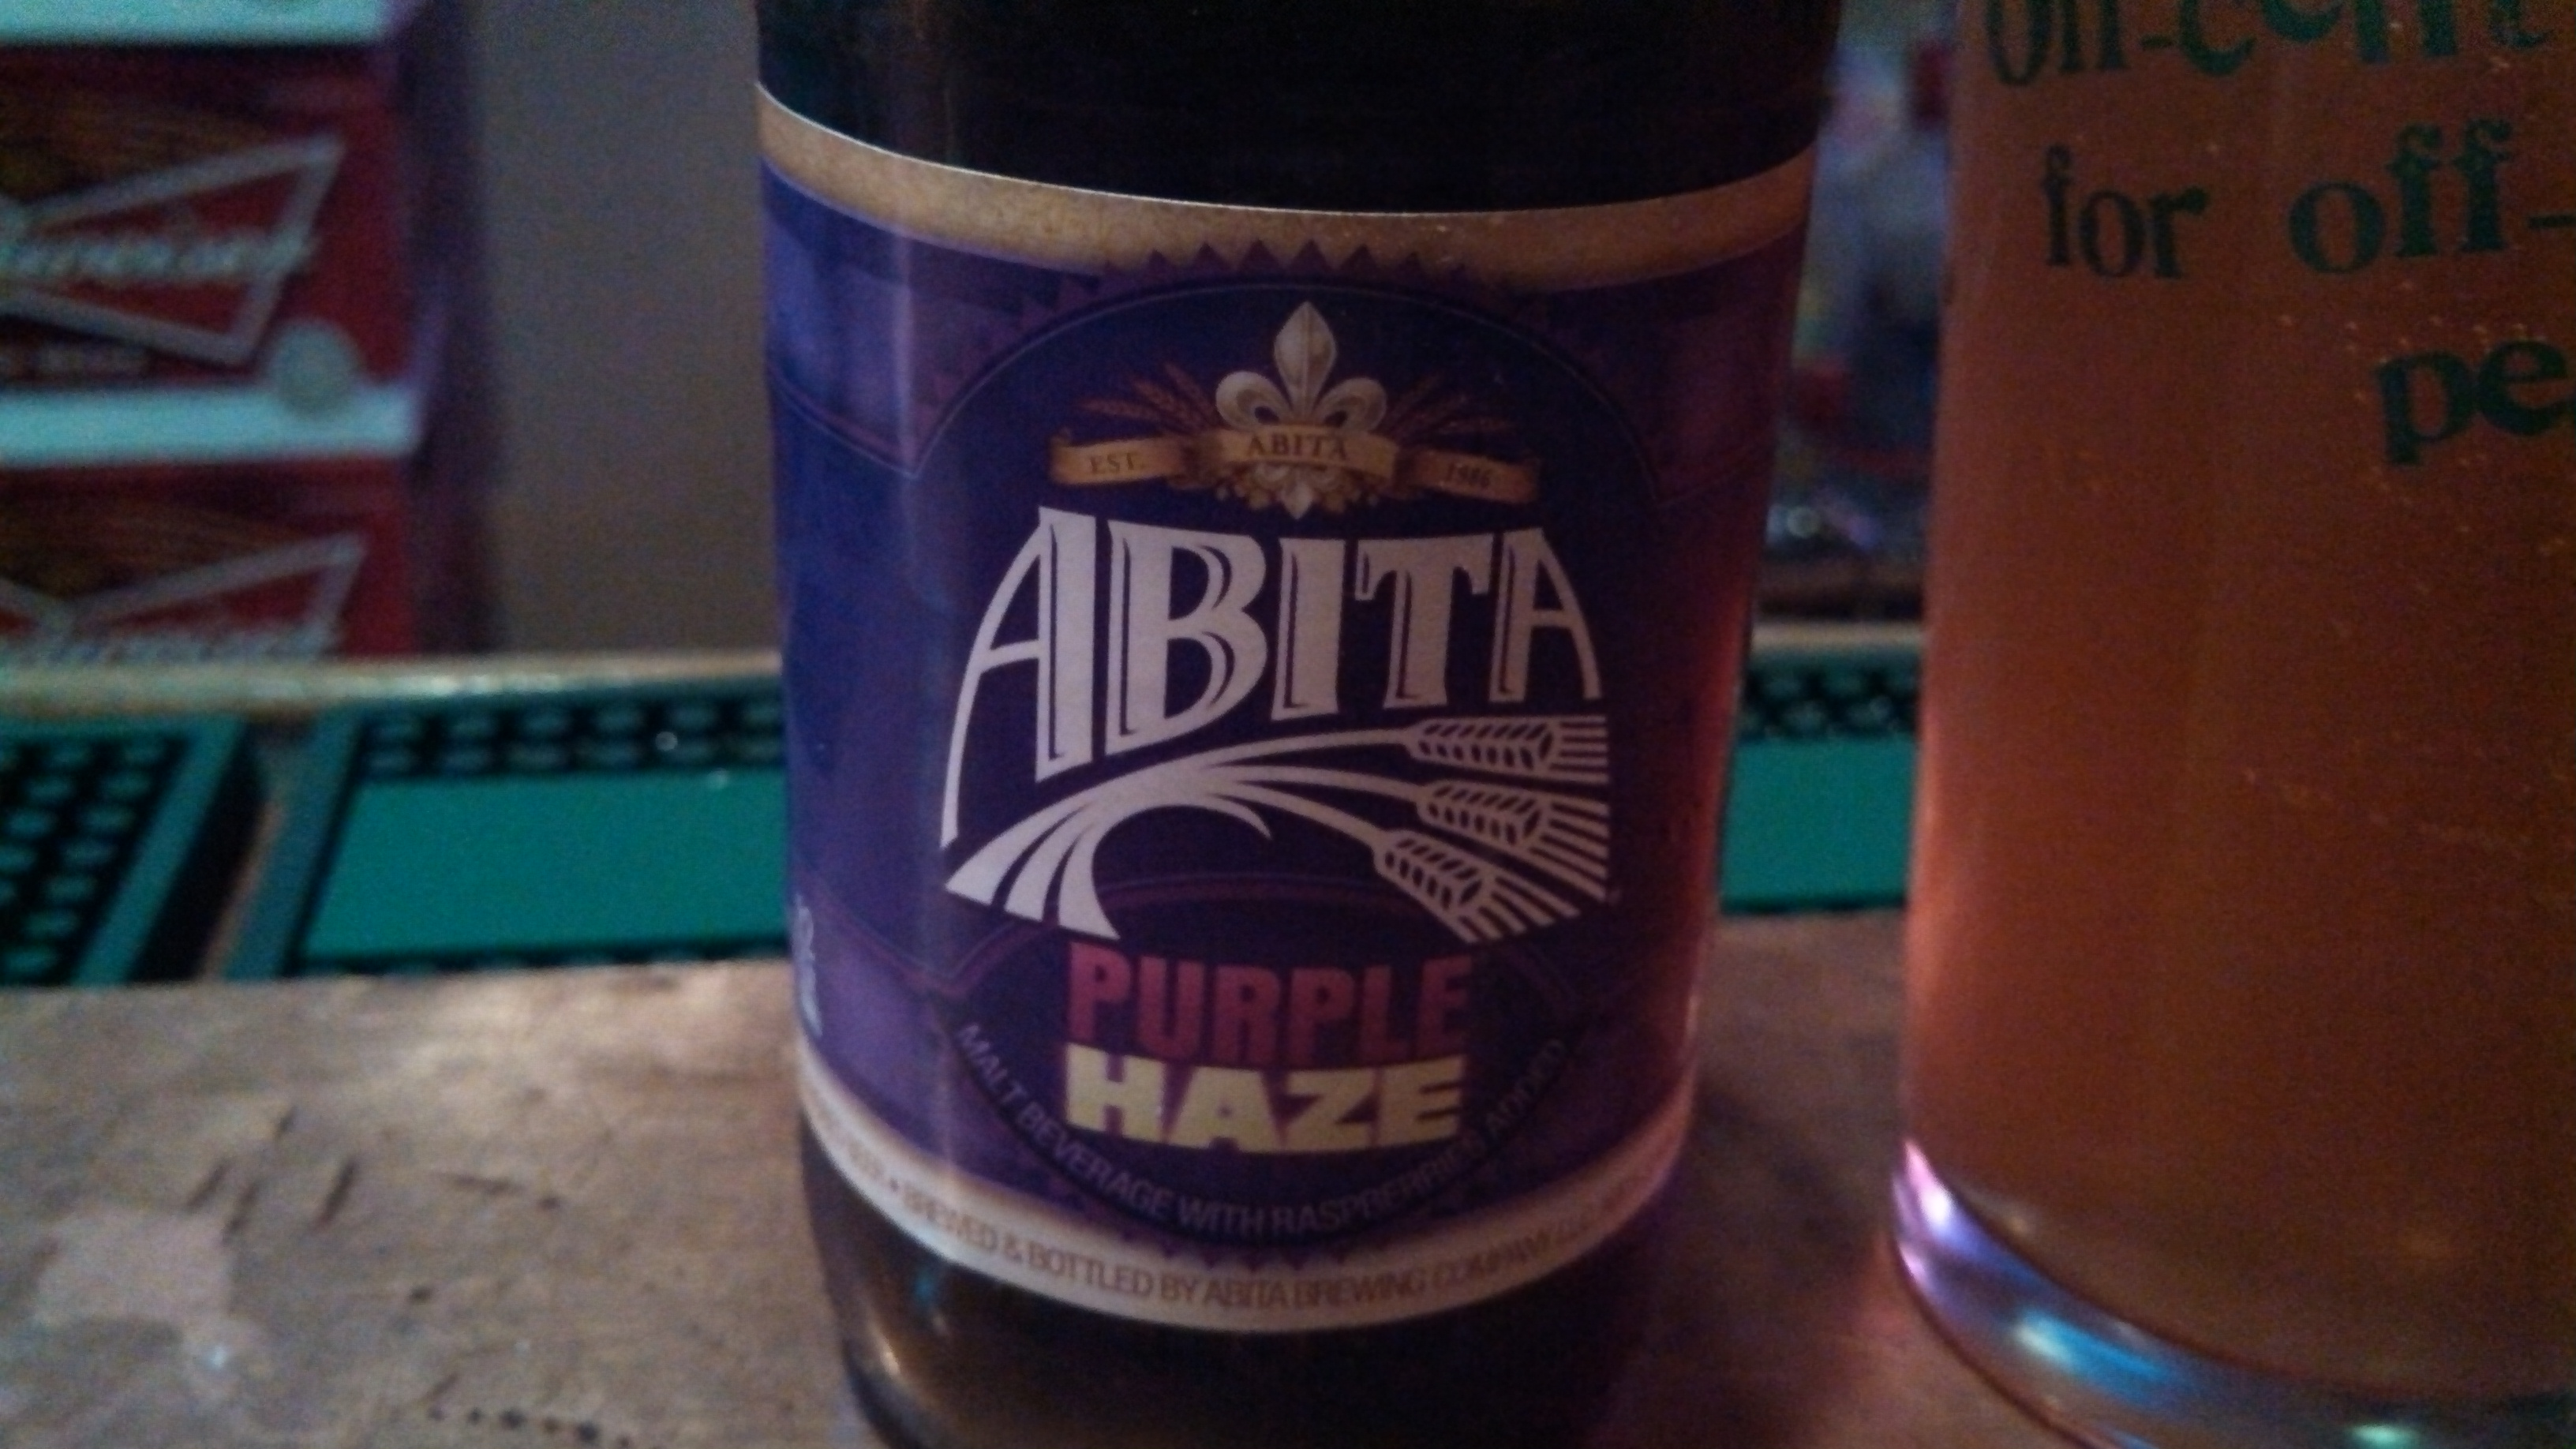 """abita springs chatrooms 342 fenton glass e store specializes in specializes in new and recent releases includes catalog listing, newsletter, and links ã¢â'¬å""""ã'ã¢â'¬â¹ãu."""